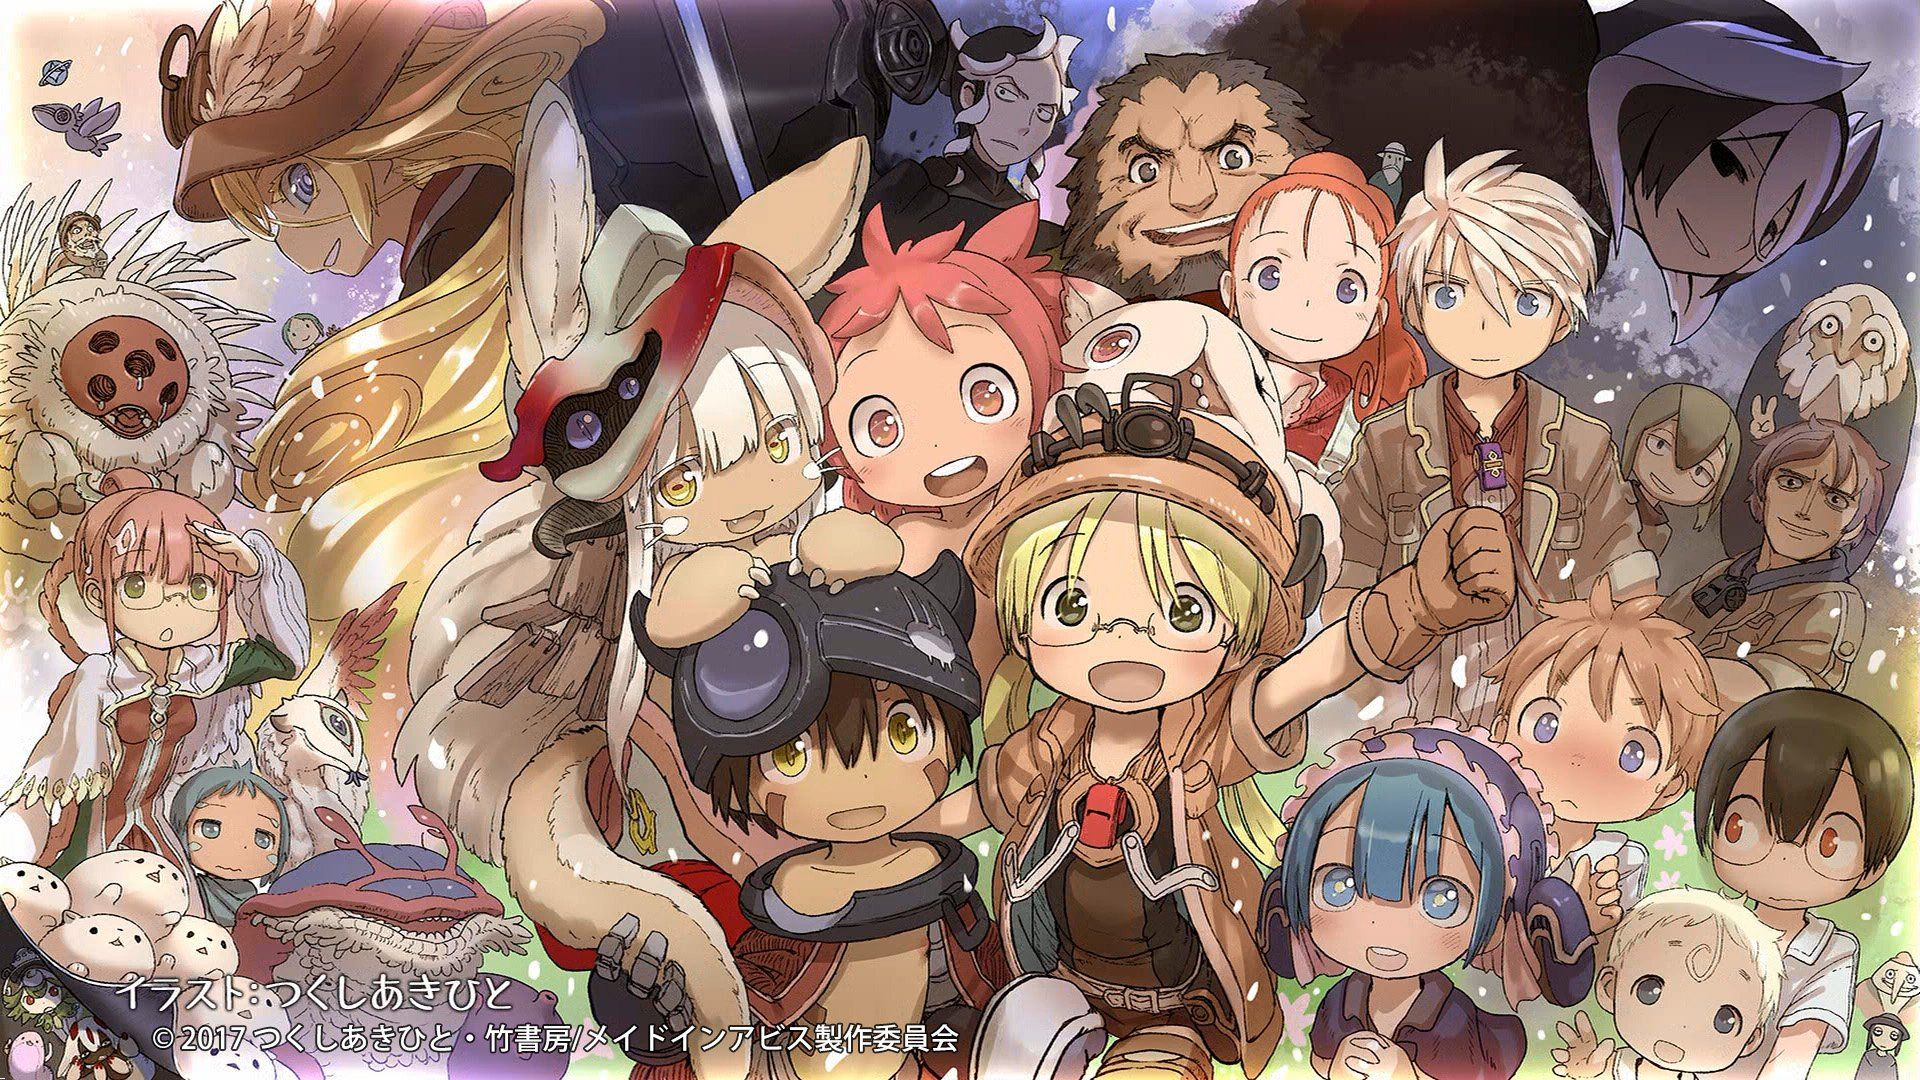 Made In Abyss Wallpapers Top Free Made In Abyss Backgrounds Wallpaperaccess